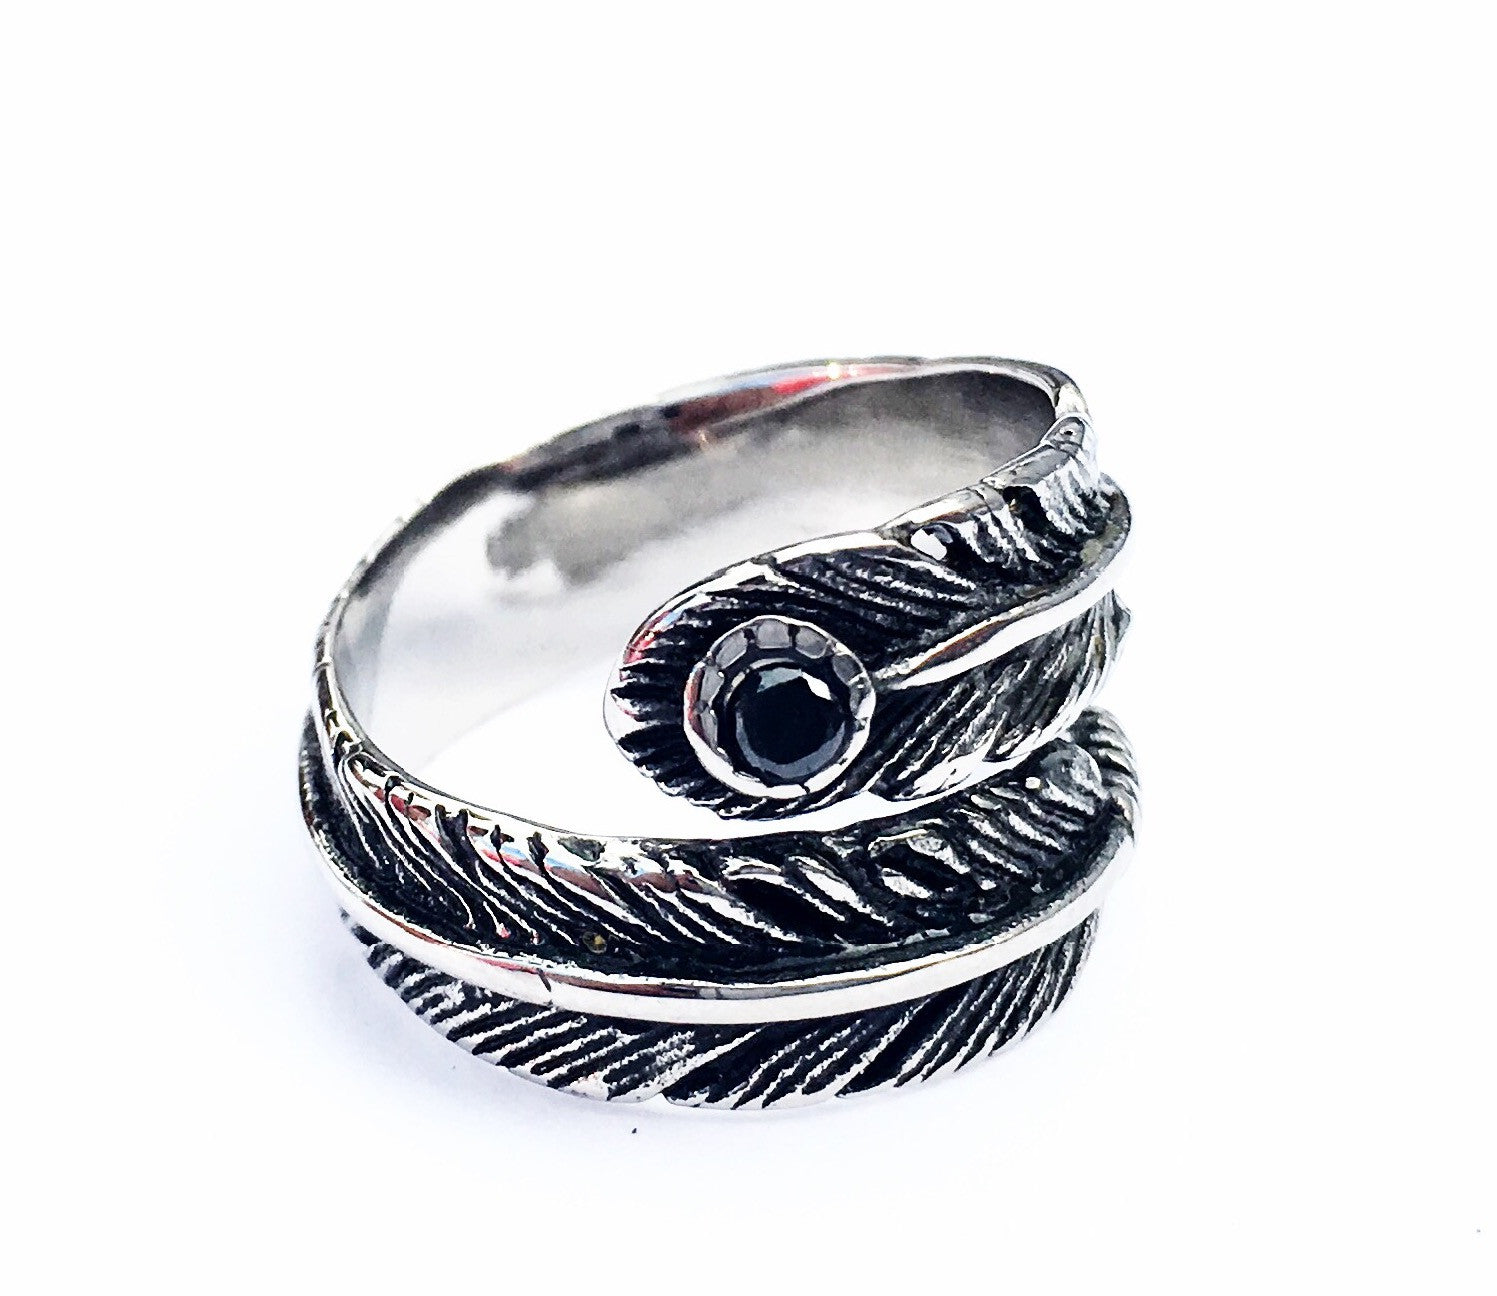 Steel Sheet and Black Stone Woman Ring